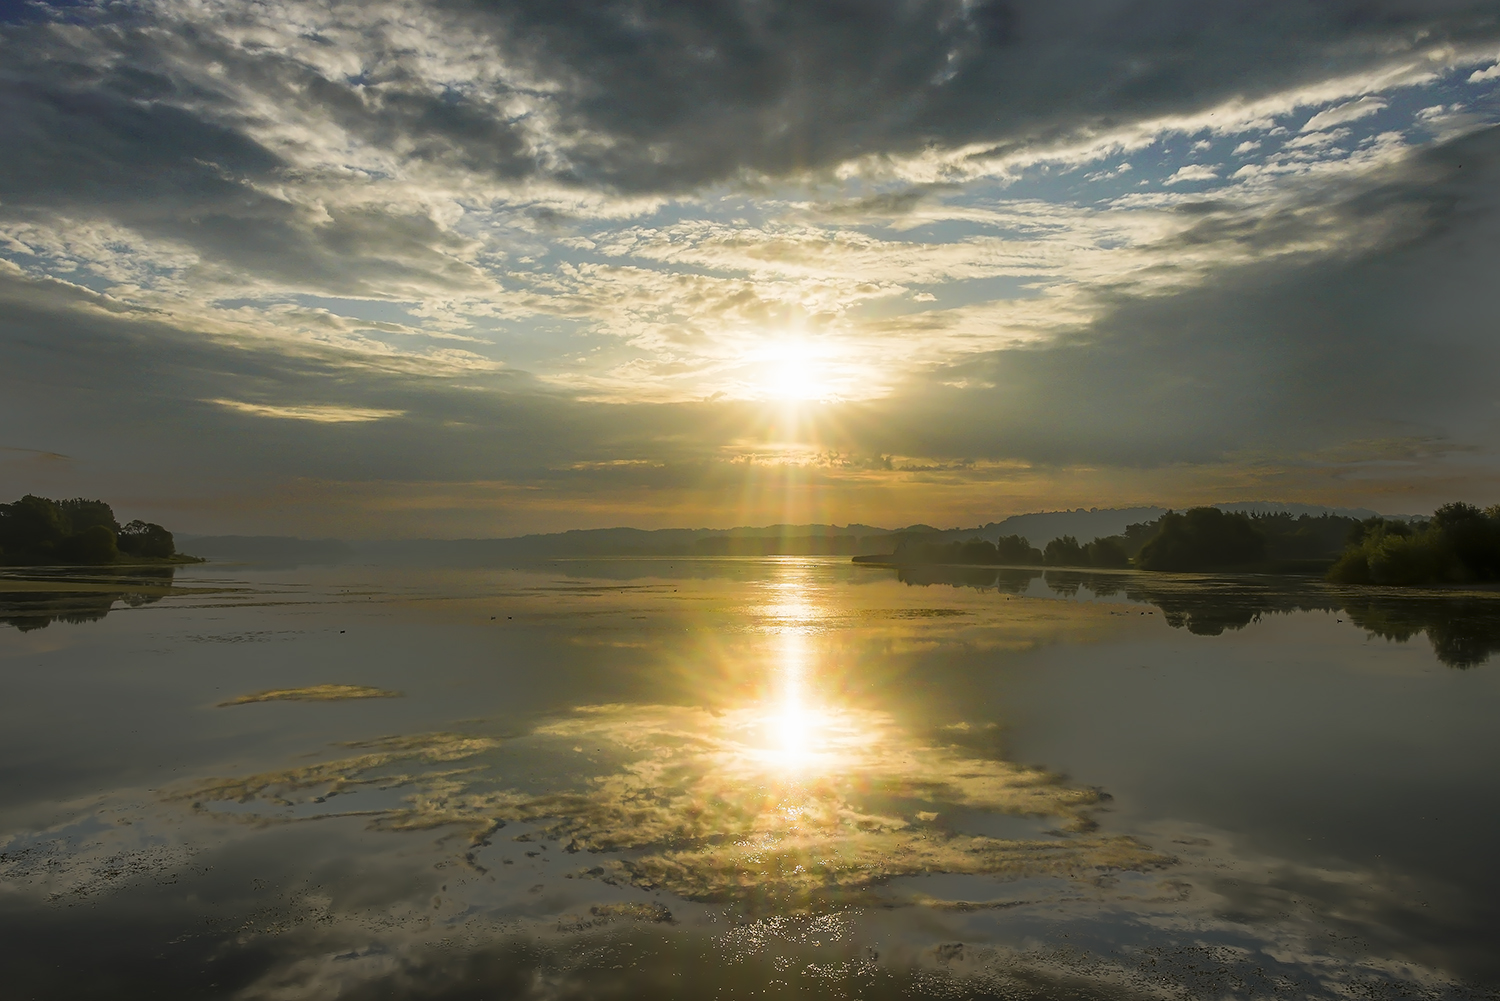 Sunrise with reflections on Chew Valley Lake